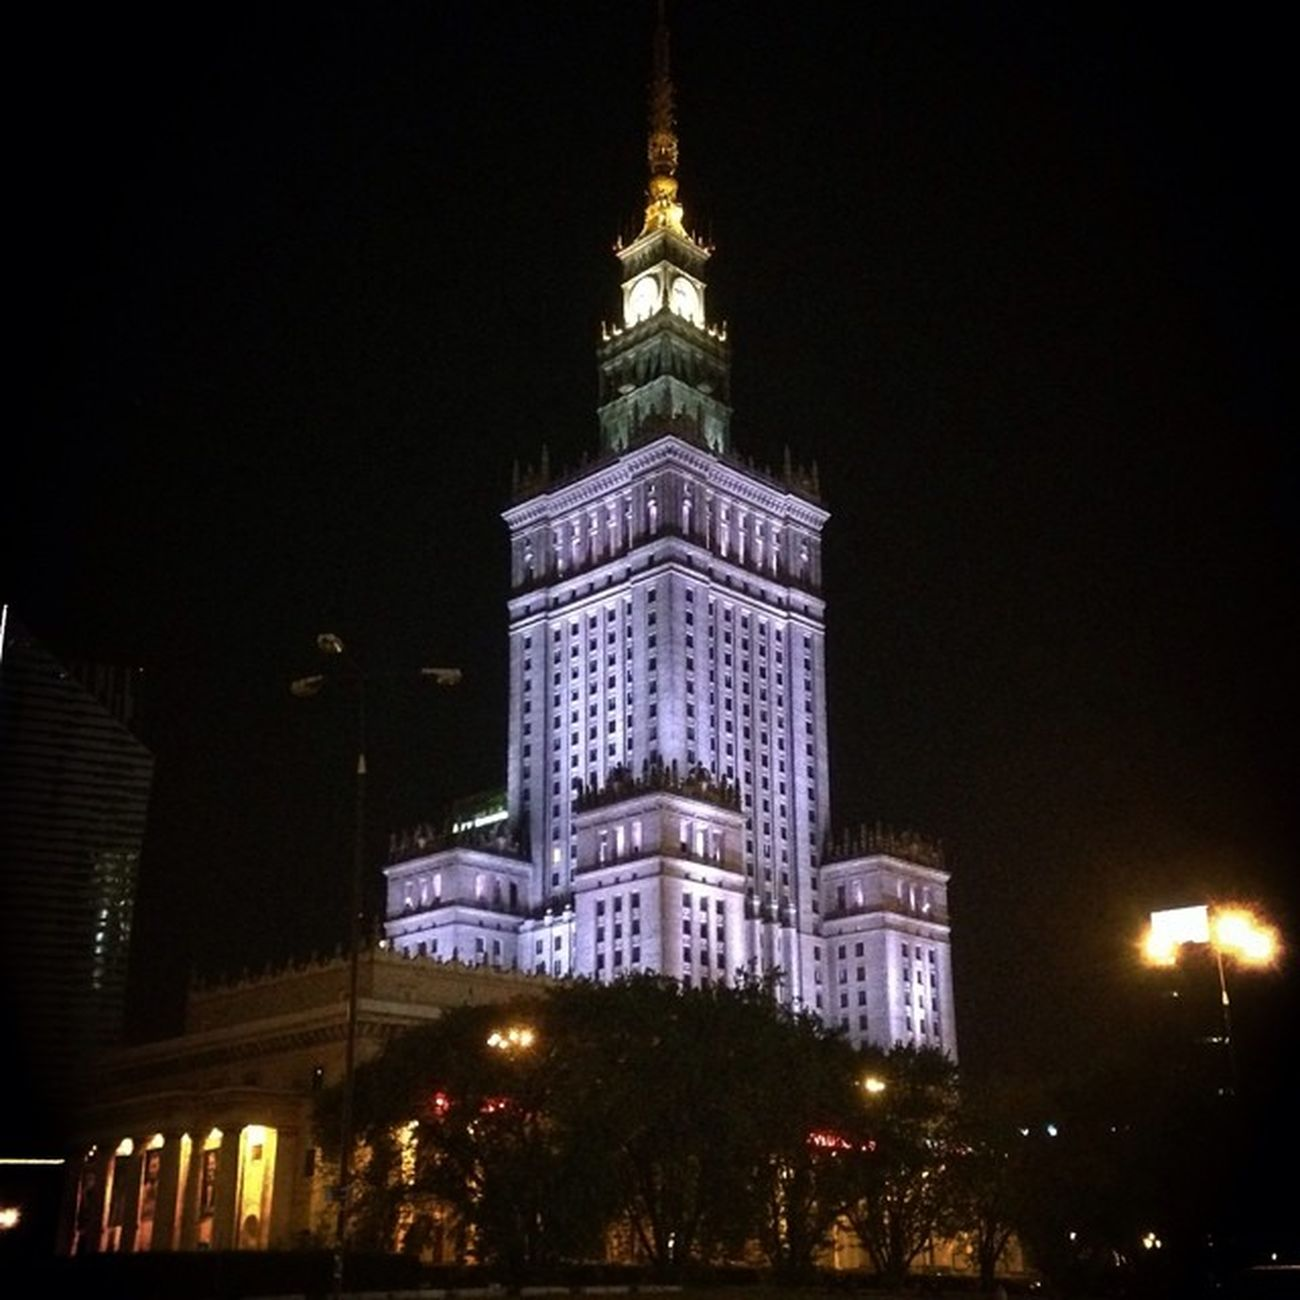 Third attempt to use SKRWT for perfecting architecture shot. The infamous Palace of Culture and Science in Warsaw . Doyouskrwt Skrwt Allhailsymmetry Nofilter Igerswarsaw Igerswarszawa Palackultury Palackulturyinauki Mobilnytydzien Grupamobilni